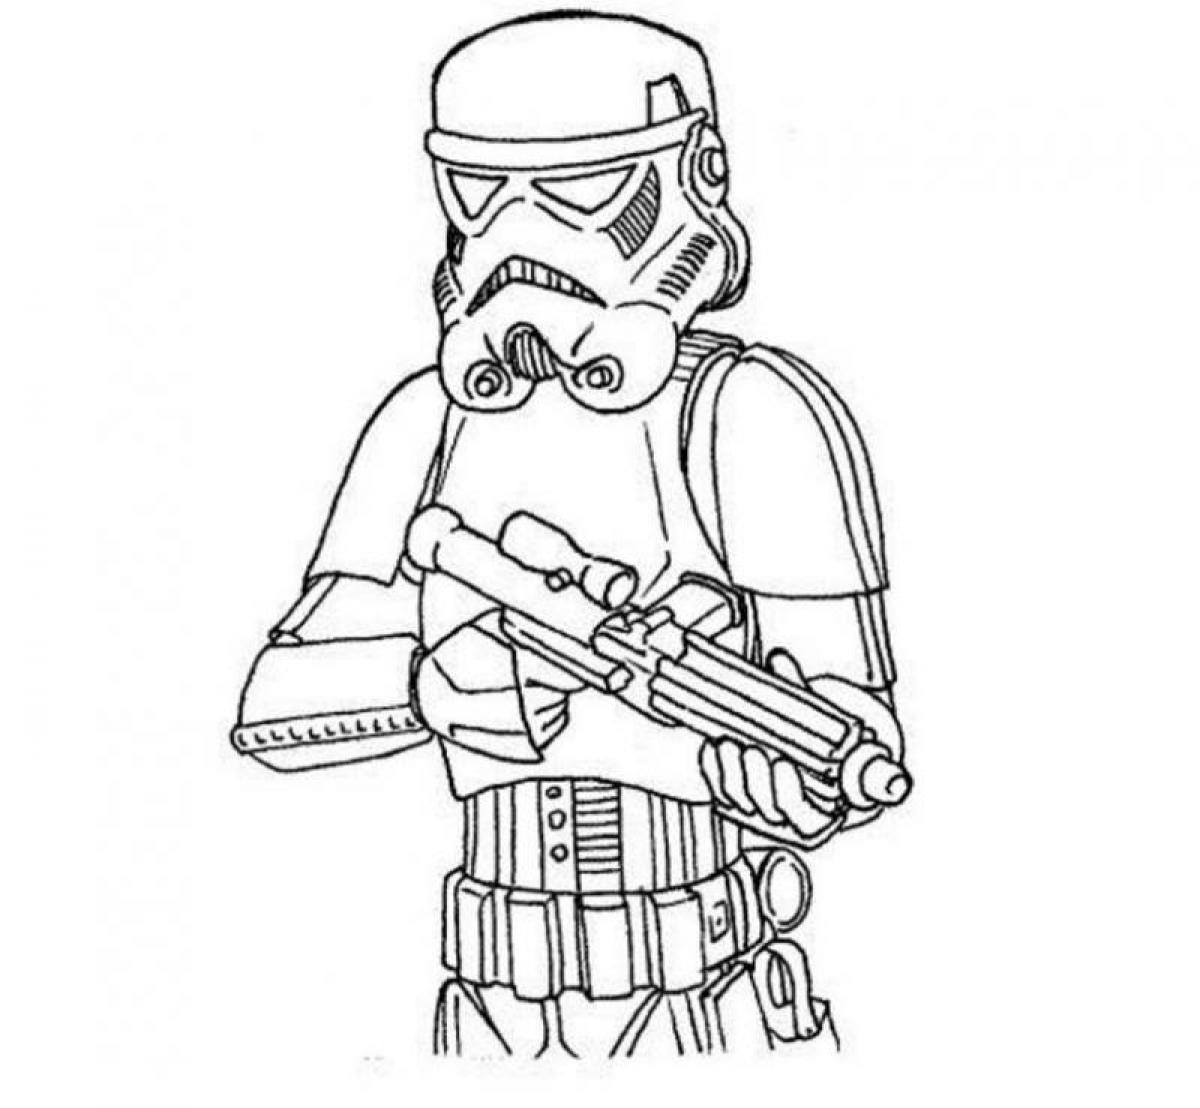 Star Wars Stormtrooper Coloring Page 01